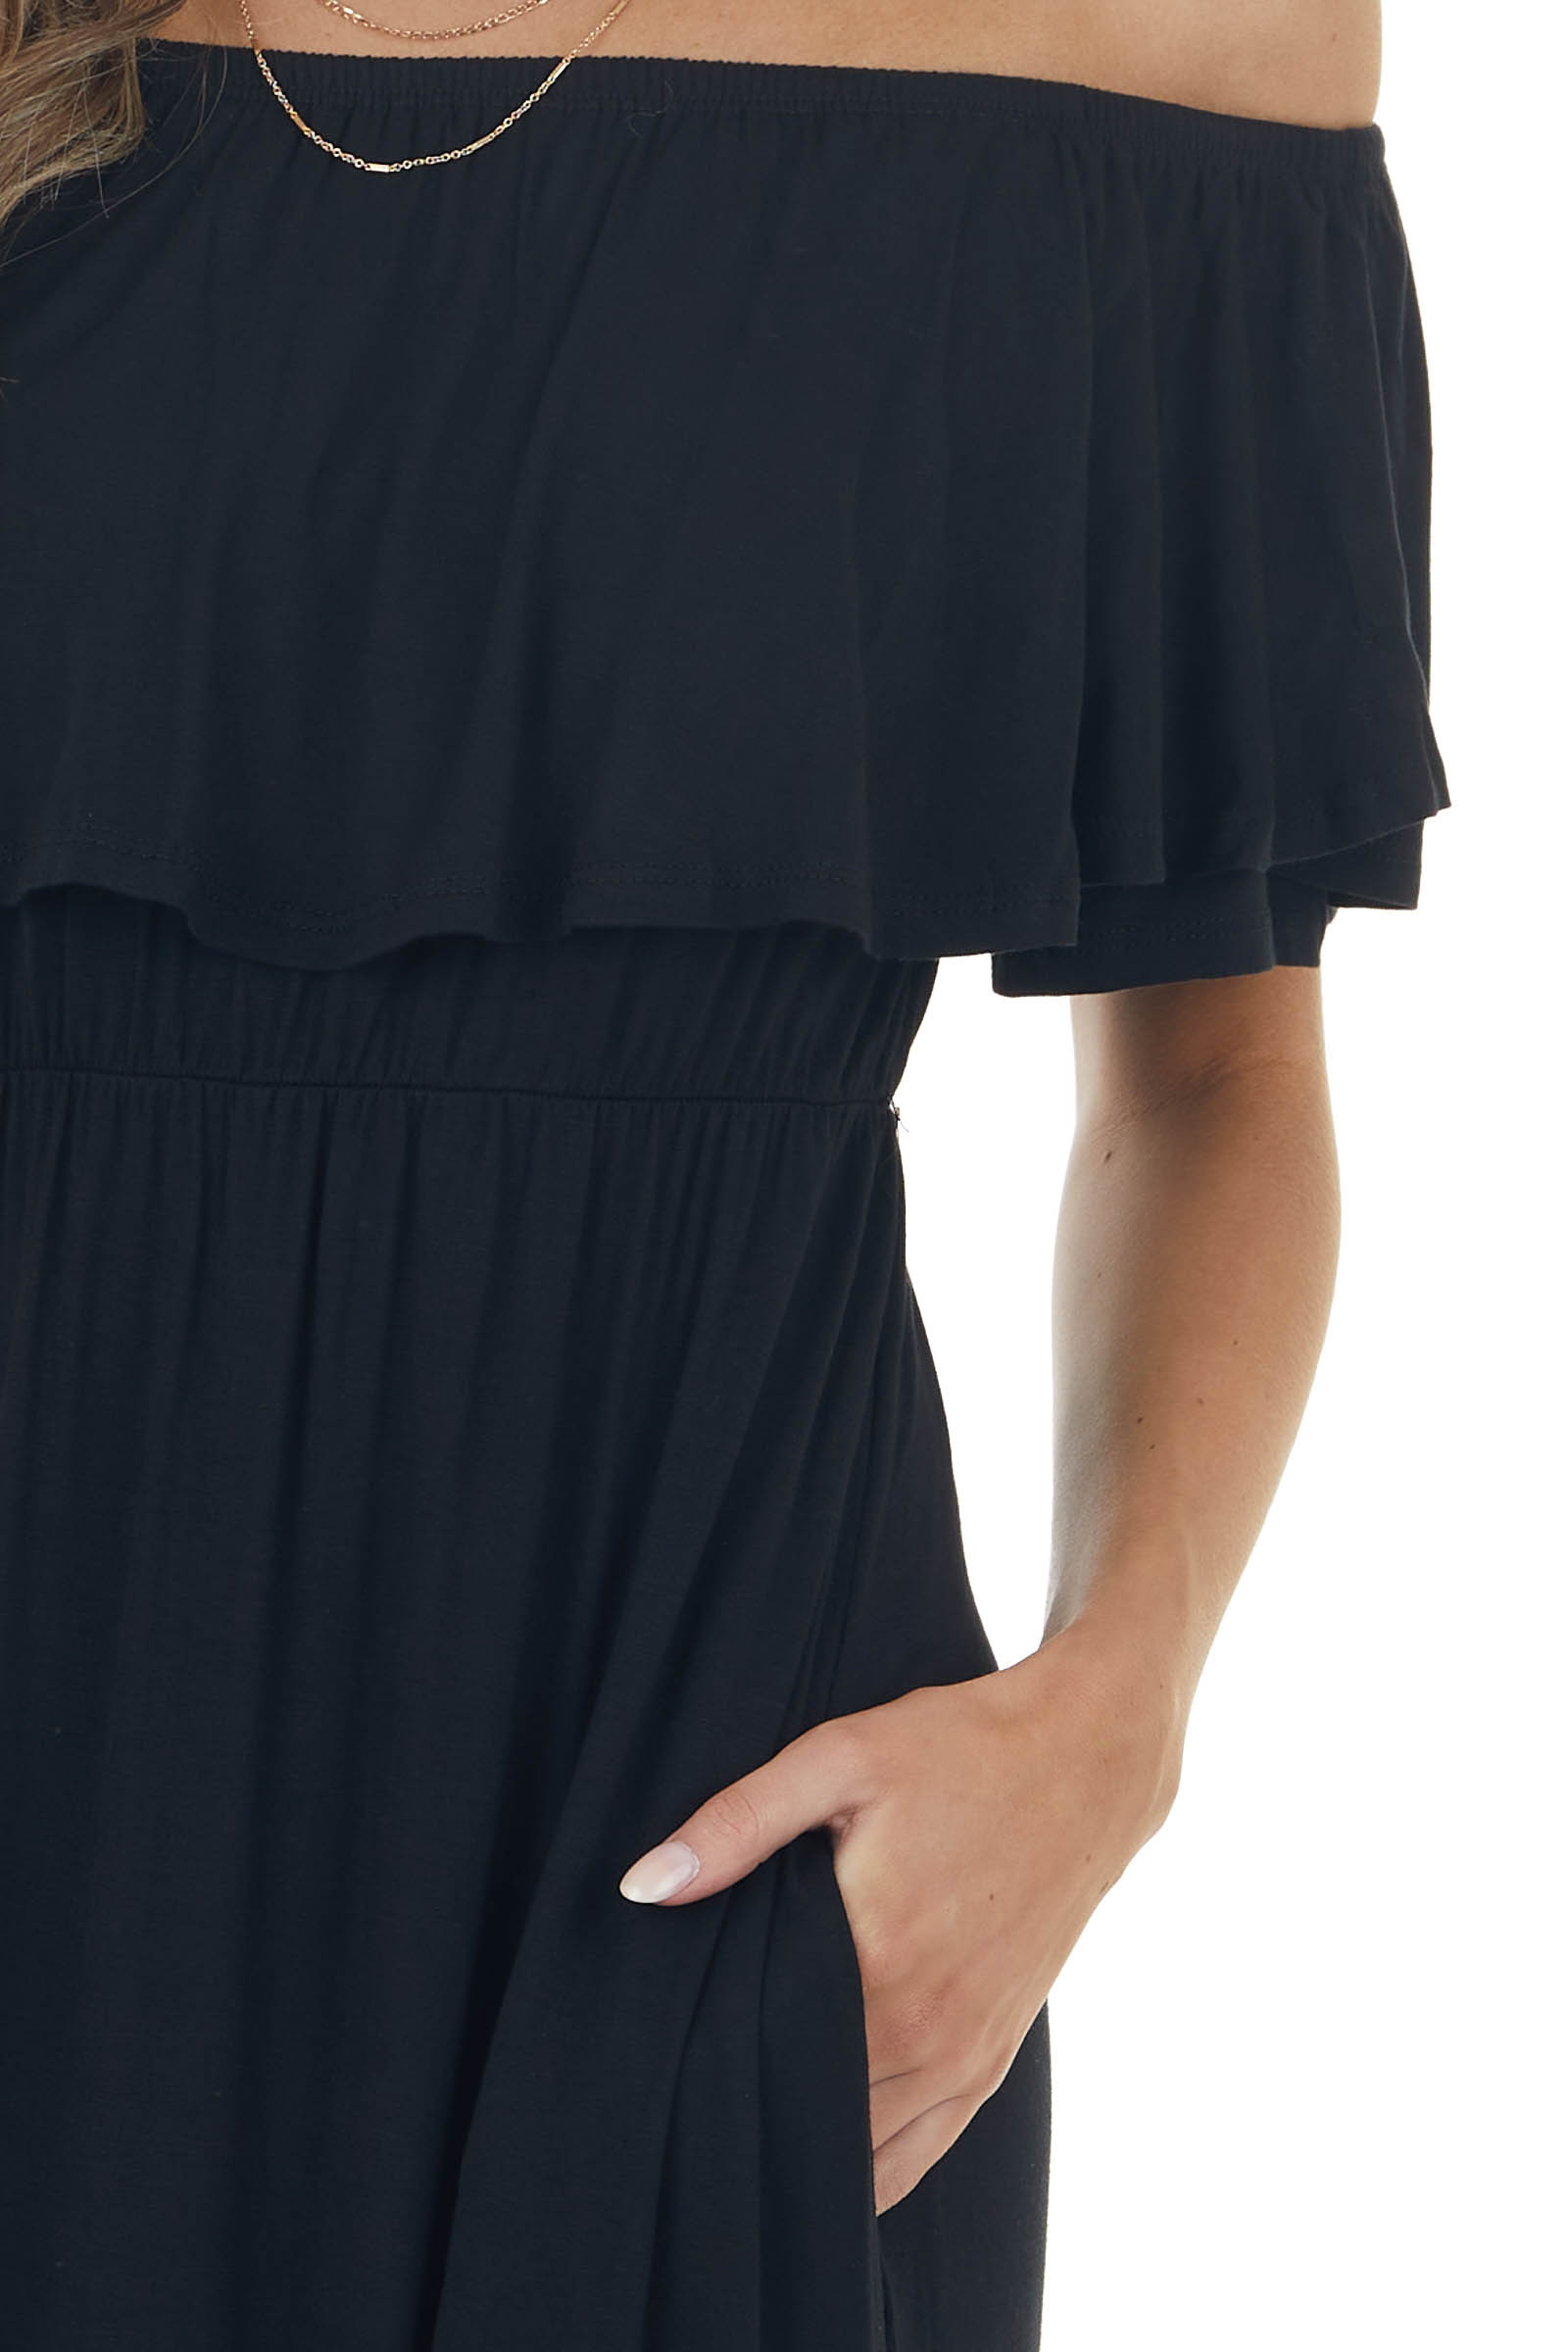 Black Off Shoulder Overlaying Knit Maxi Dress with Pockets